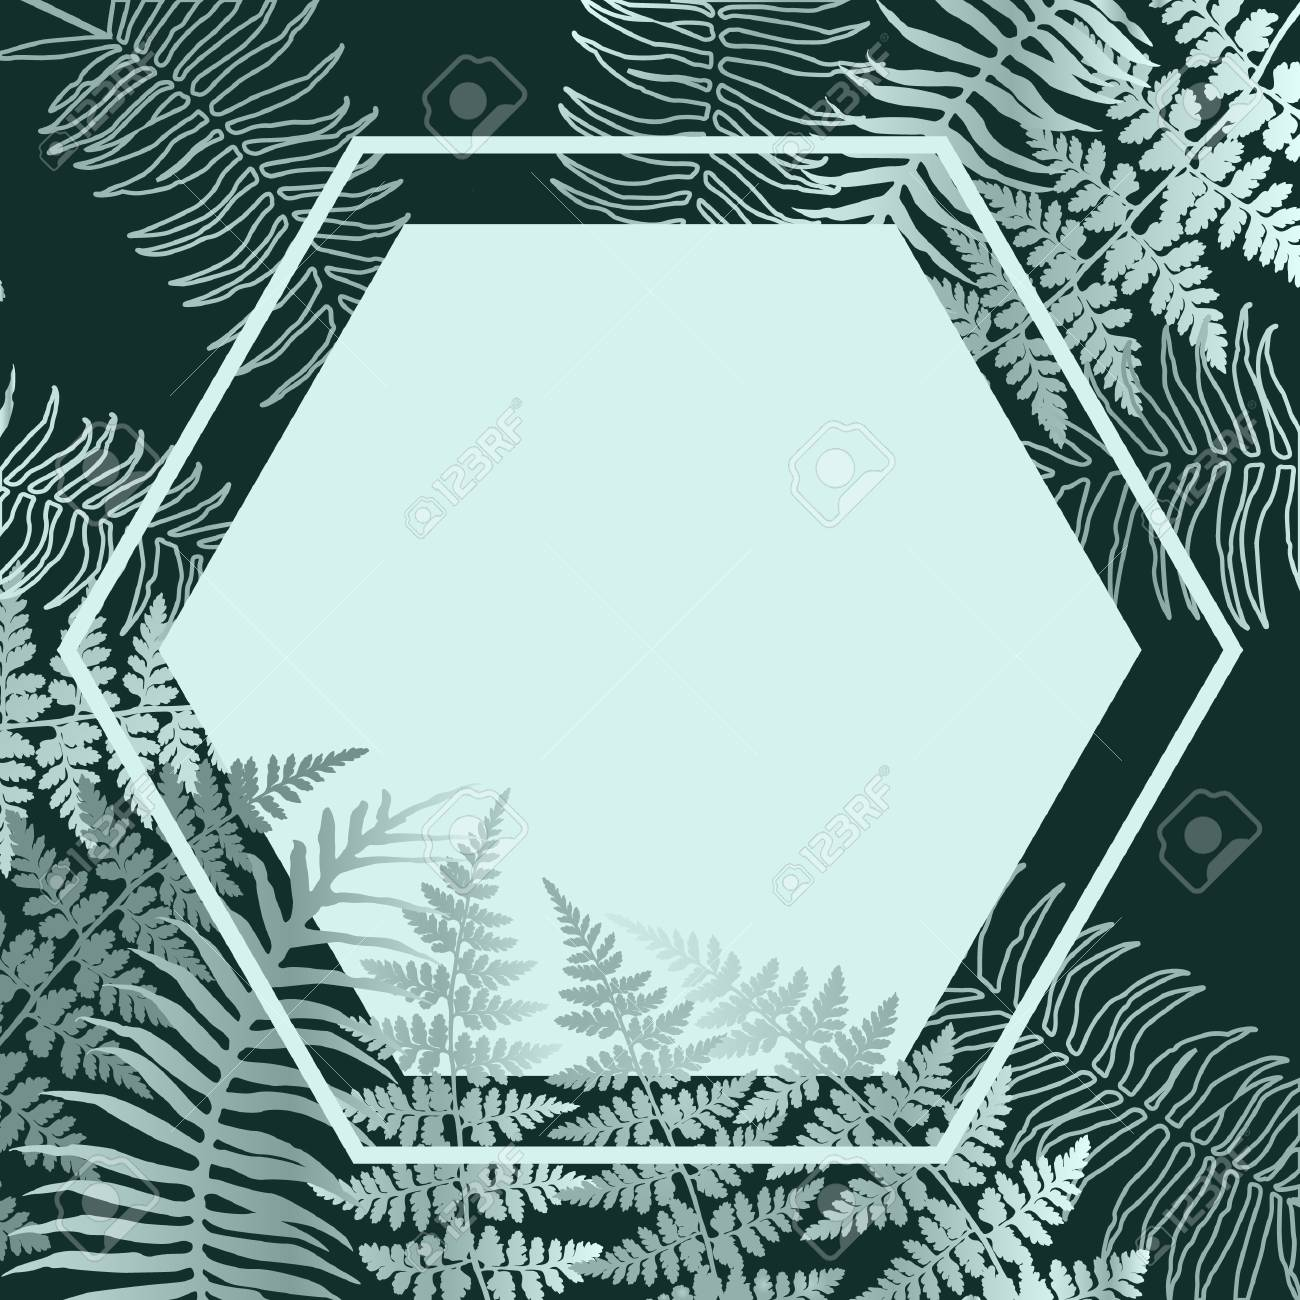 Realistic Silver Fern Frond Twigs Frame Vector Polypodiophyta 1300x1300